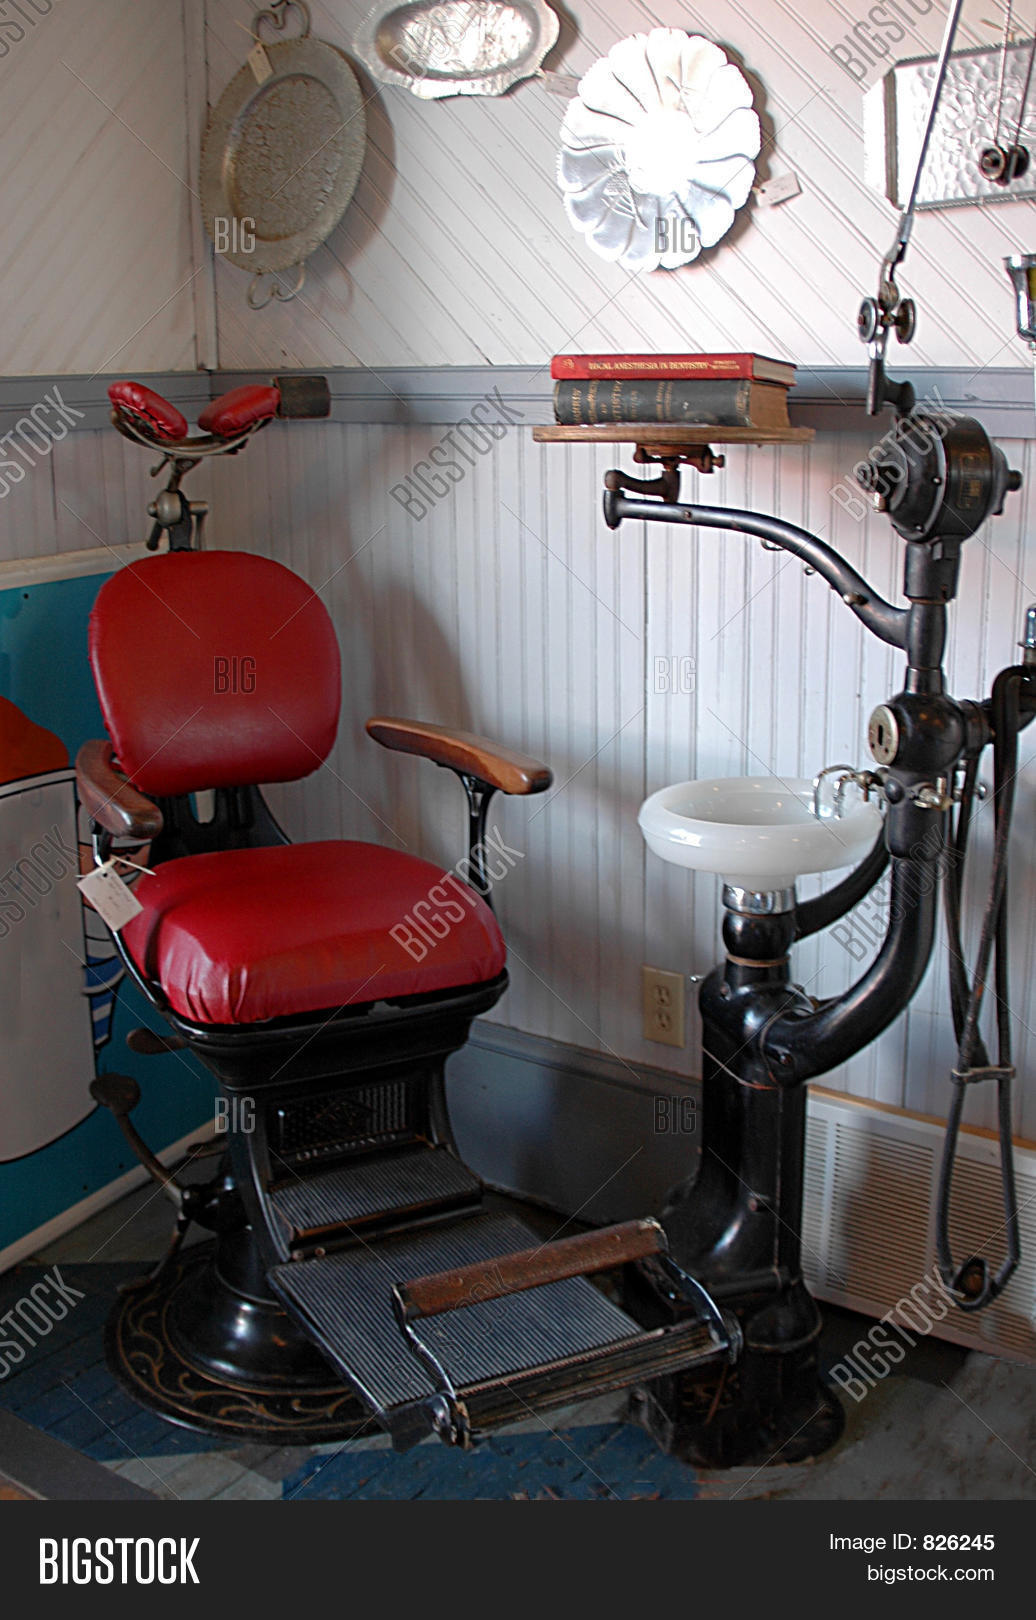 Antique Dental Chair Image Amp Photo Free Trial Bigstock